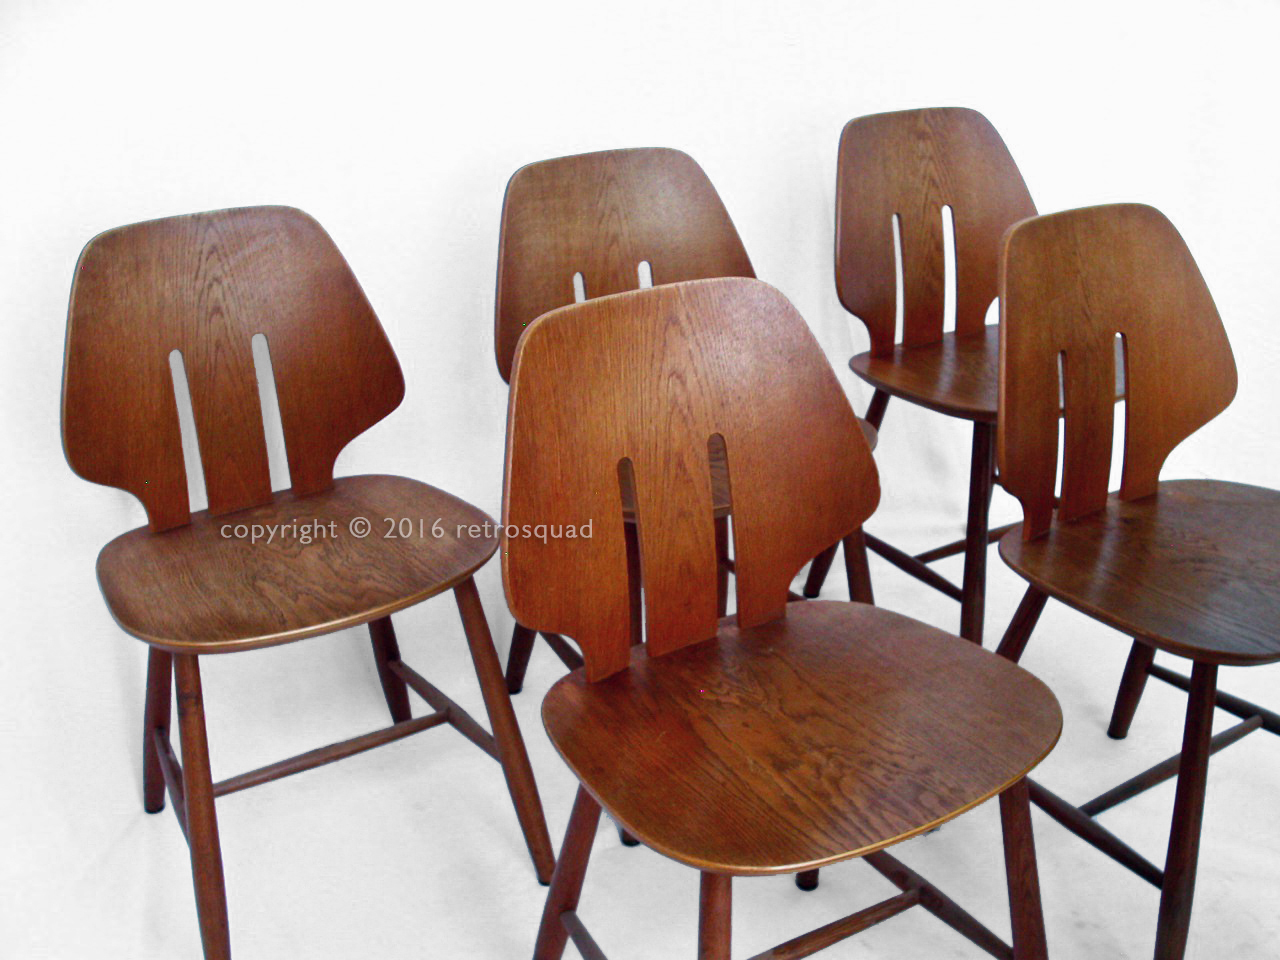 6 Modern Dining Chairs By Ejvind A. Johanss For FDB Mobler Vintage 1960 05